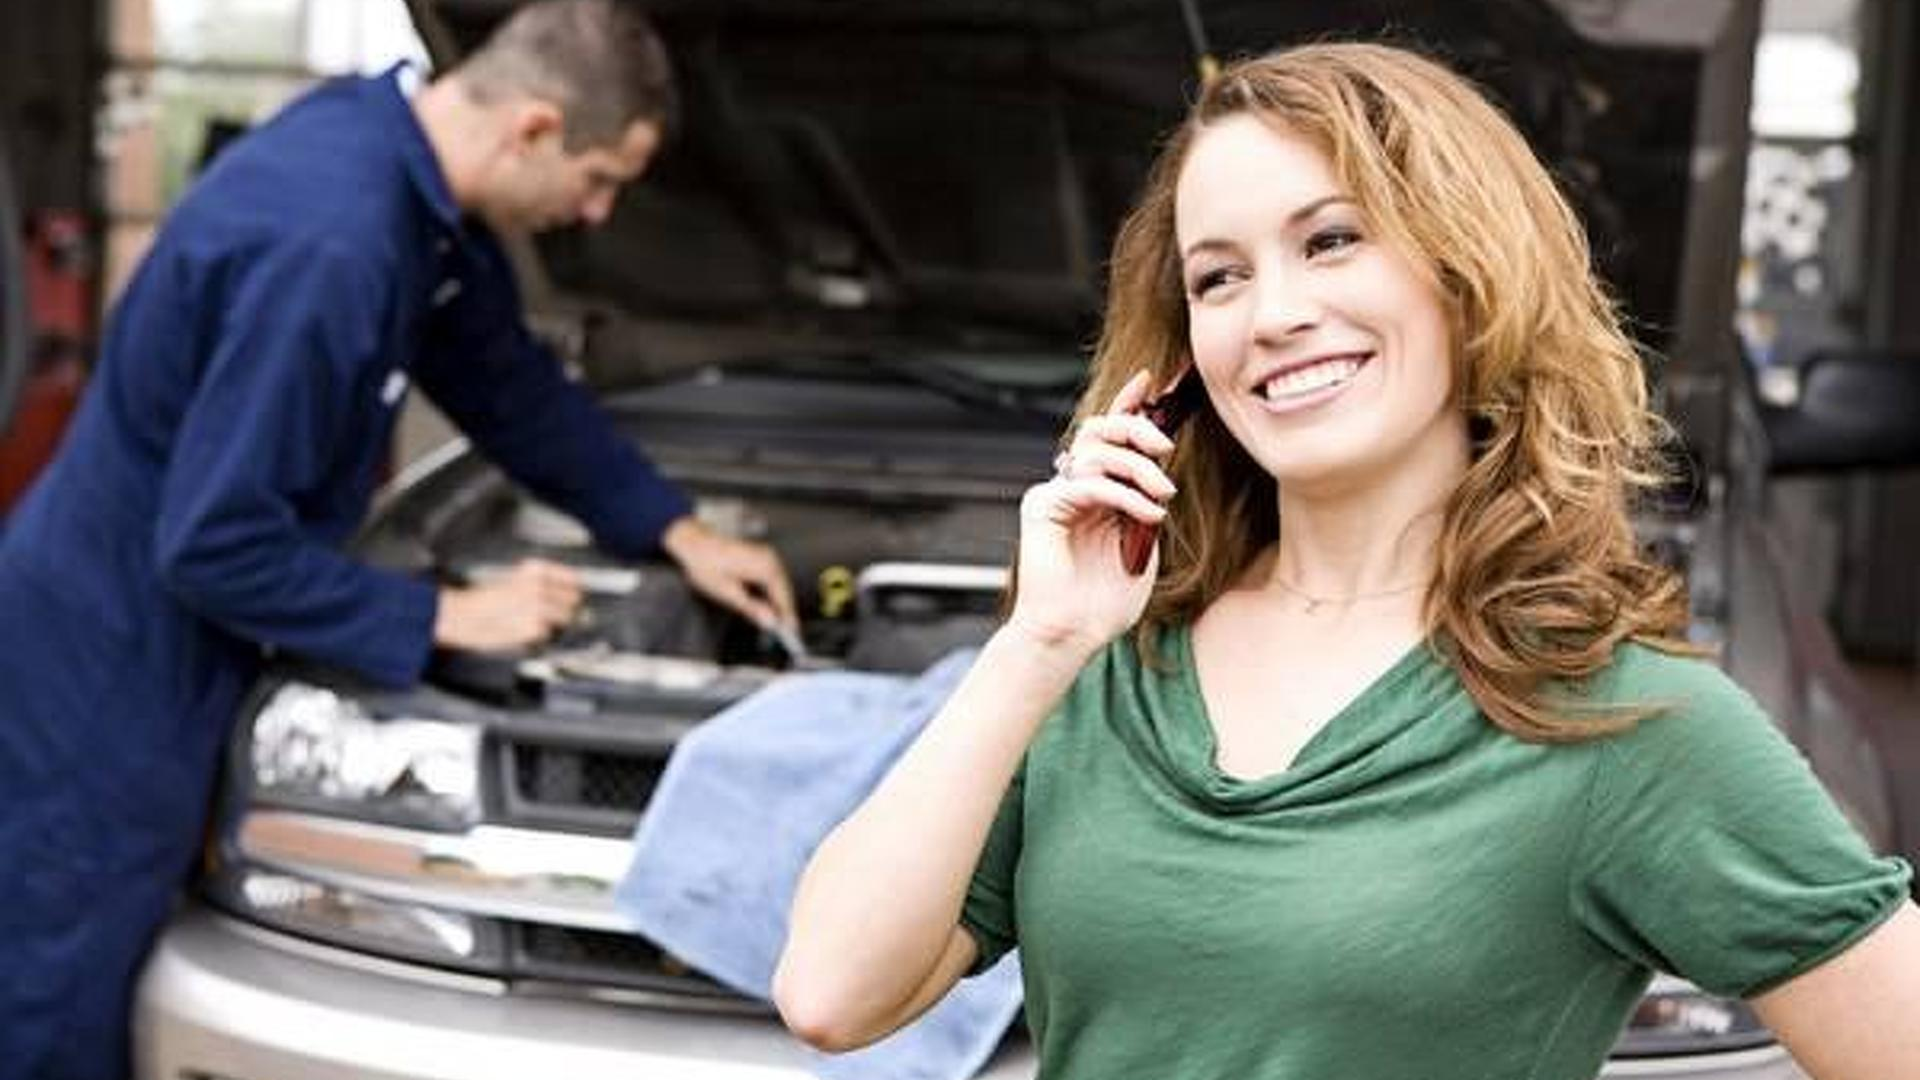 UK study says women charged 45 GBP more than men by mechanics